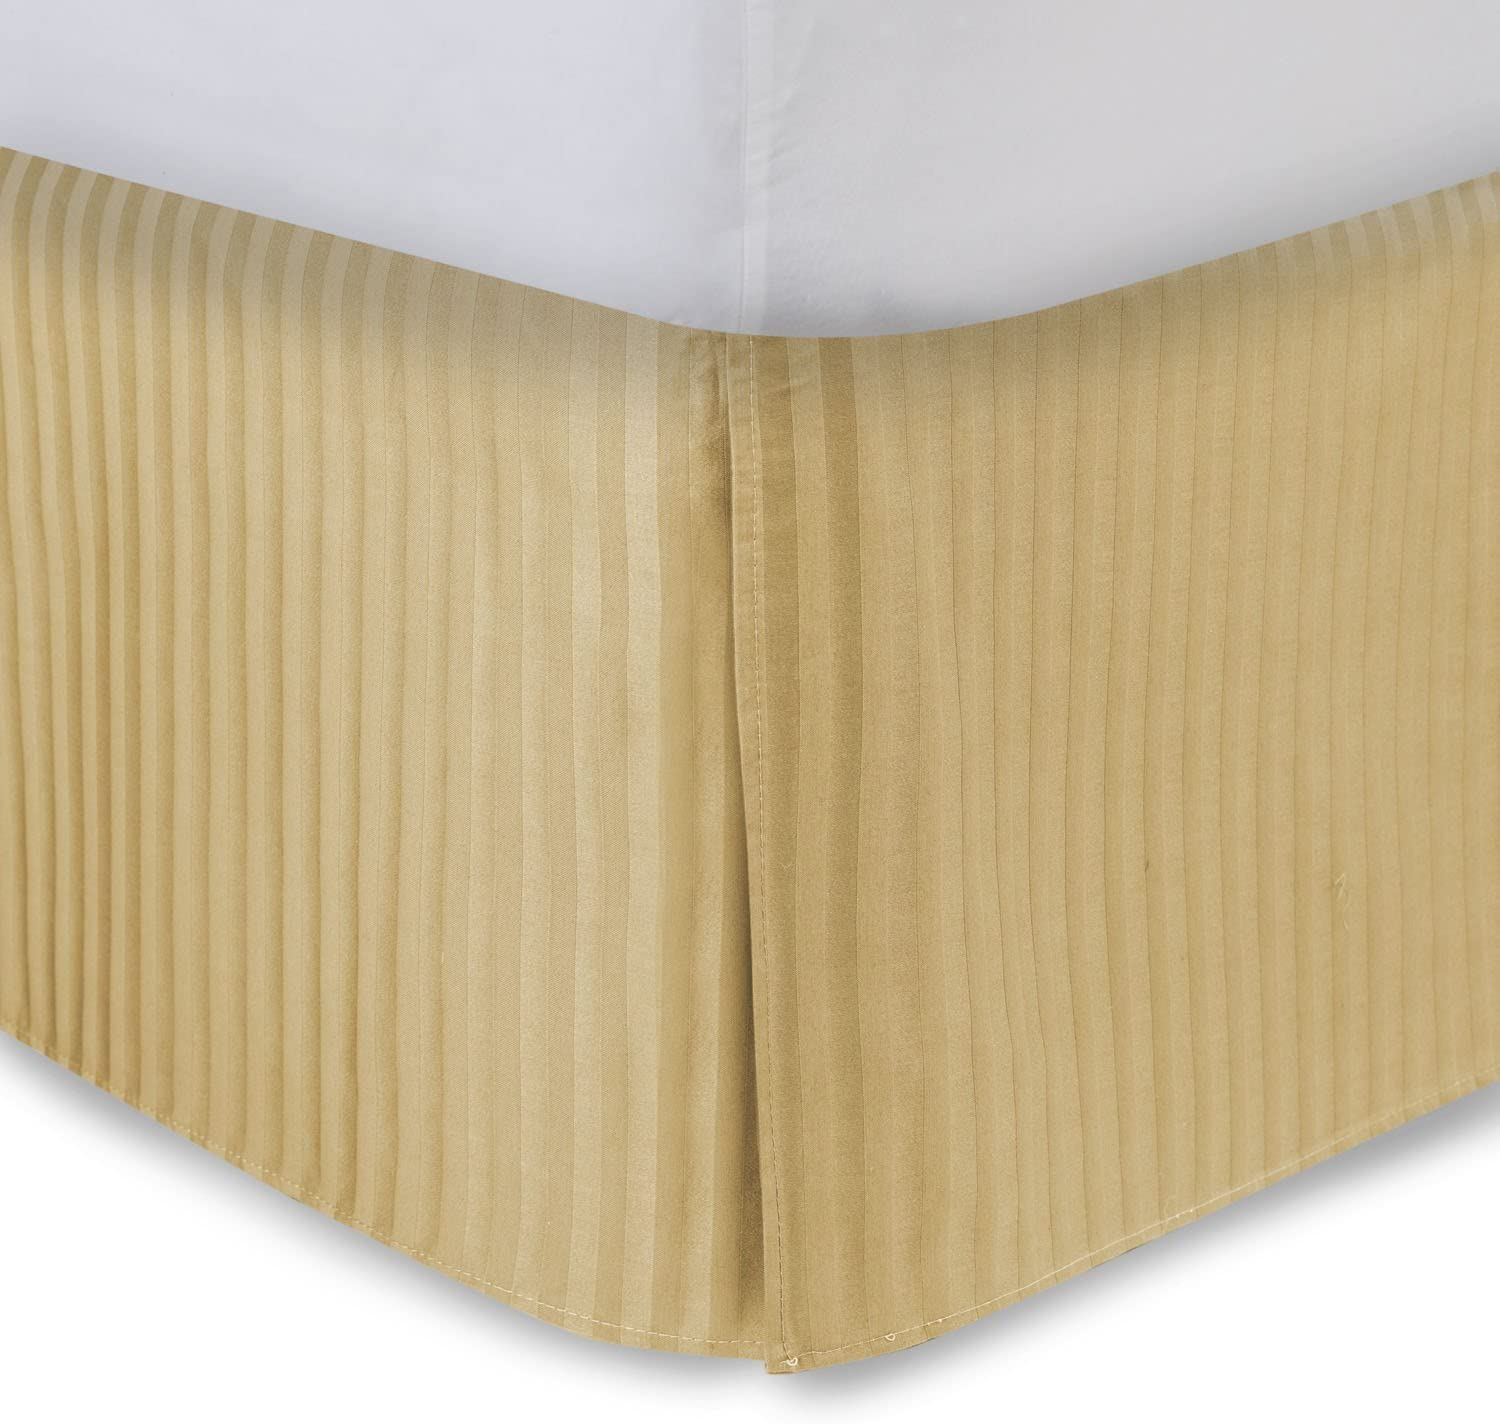 Gold Bed Skirt Olympic Queen Bed Skirt 18 Inch Drop, Tailored/Pleated Striped Bedskirt, Dust Ruffle with Split Corners and Platform, Solid Poly/Cotton 300TC Fabric